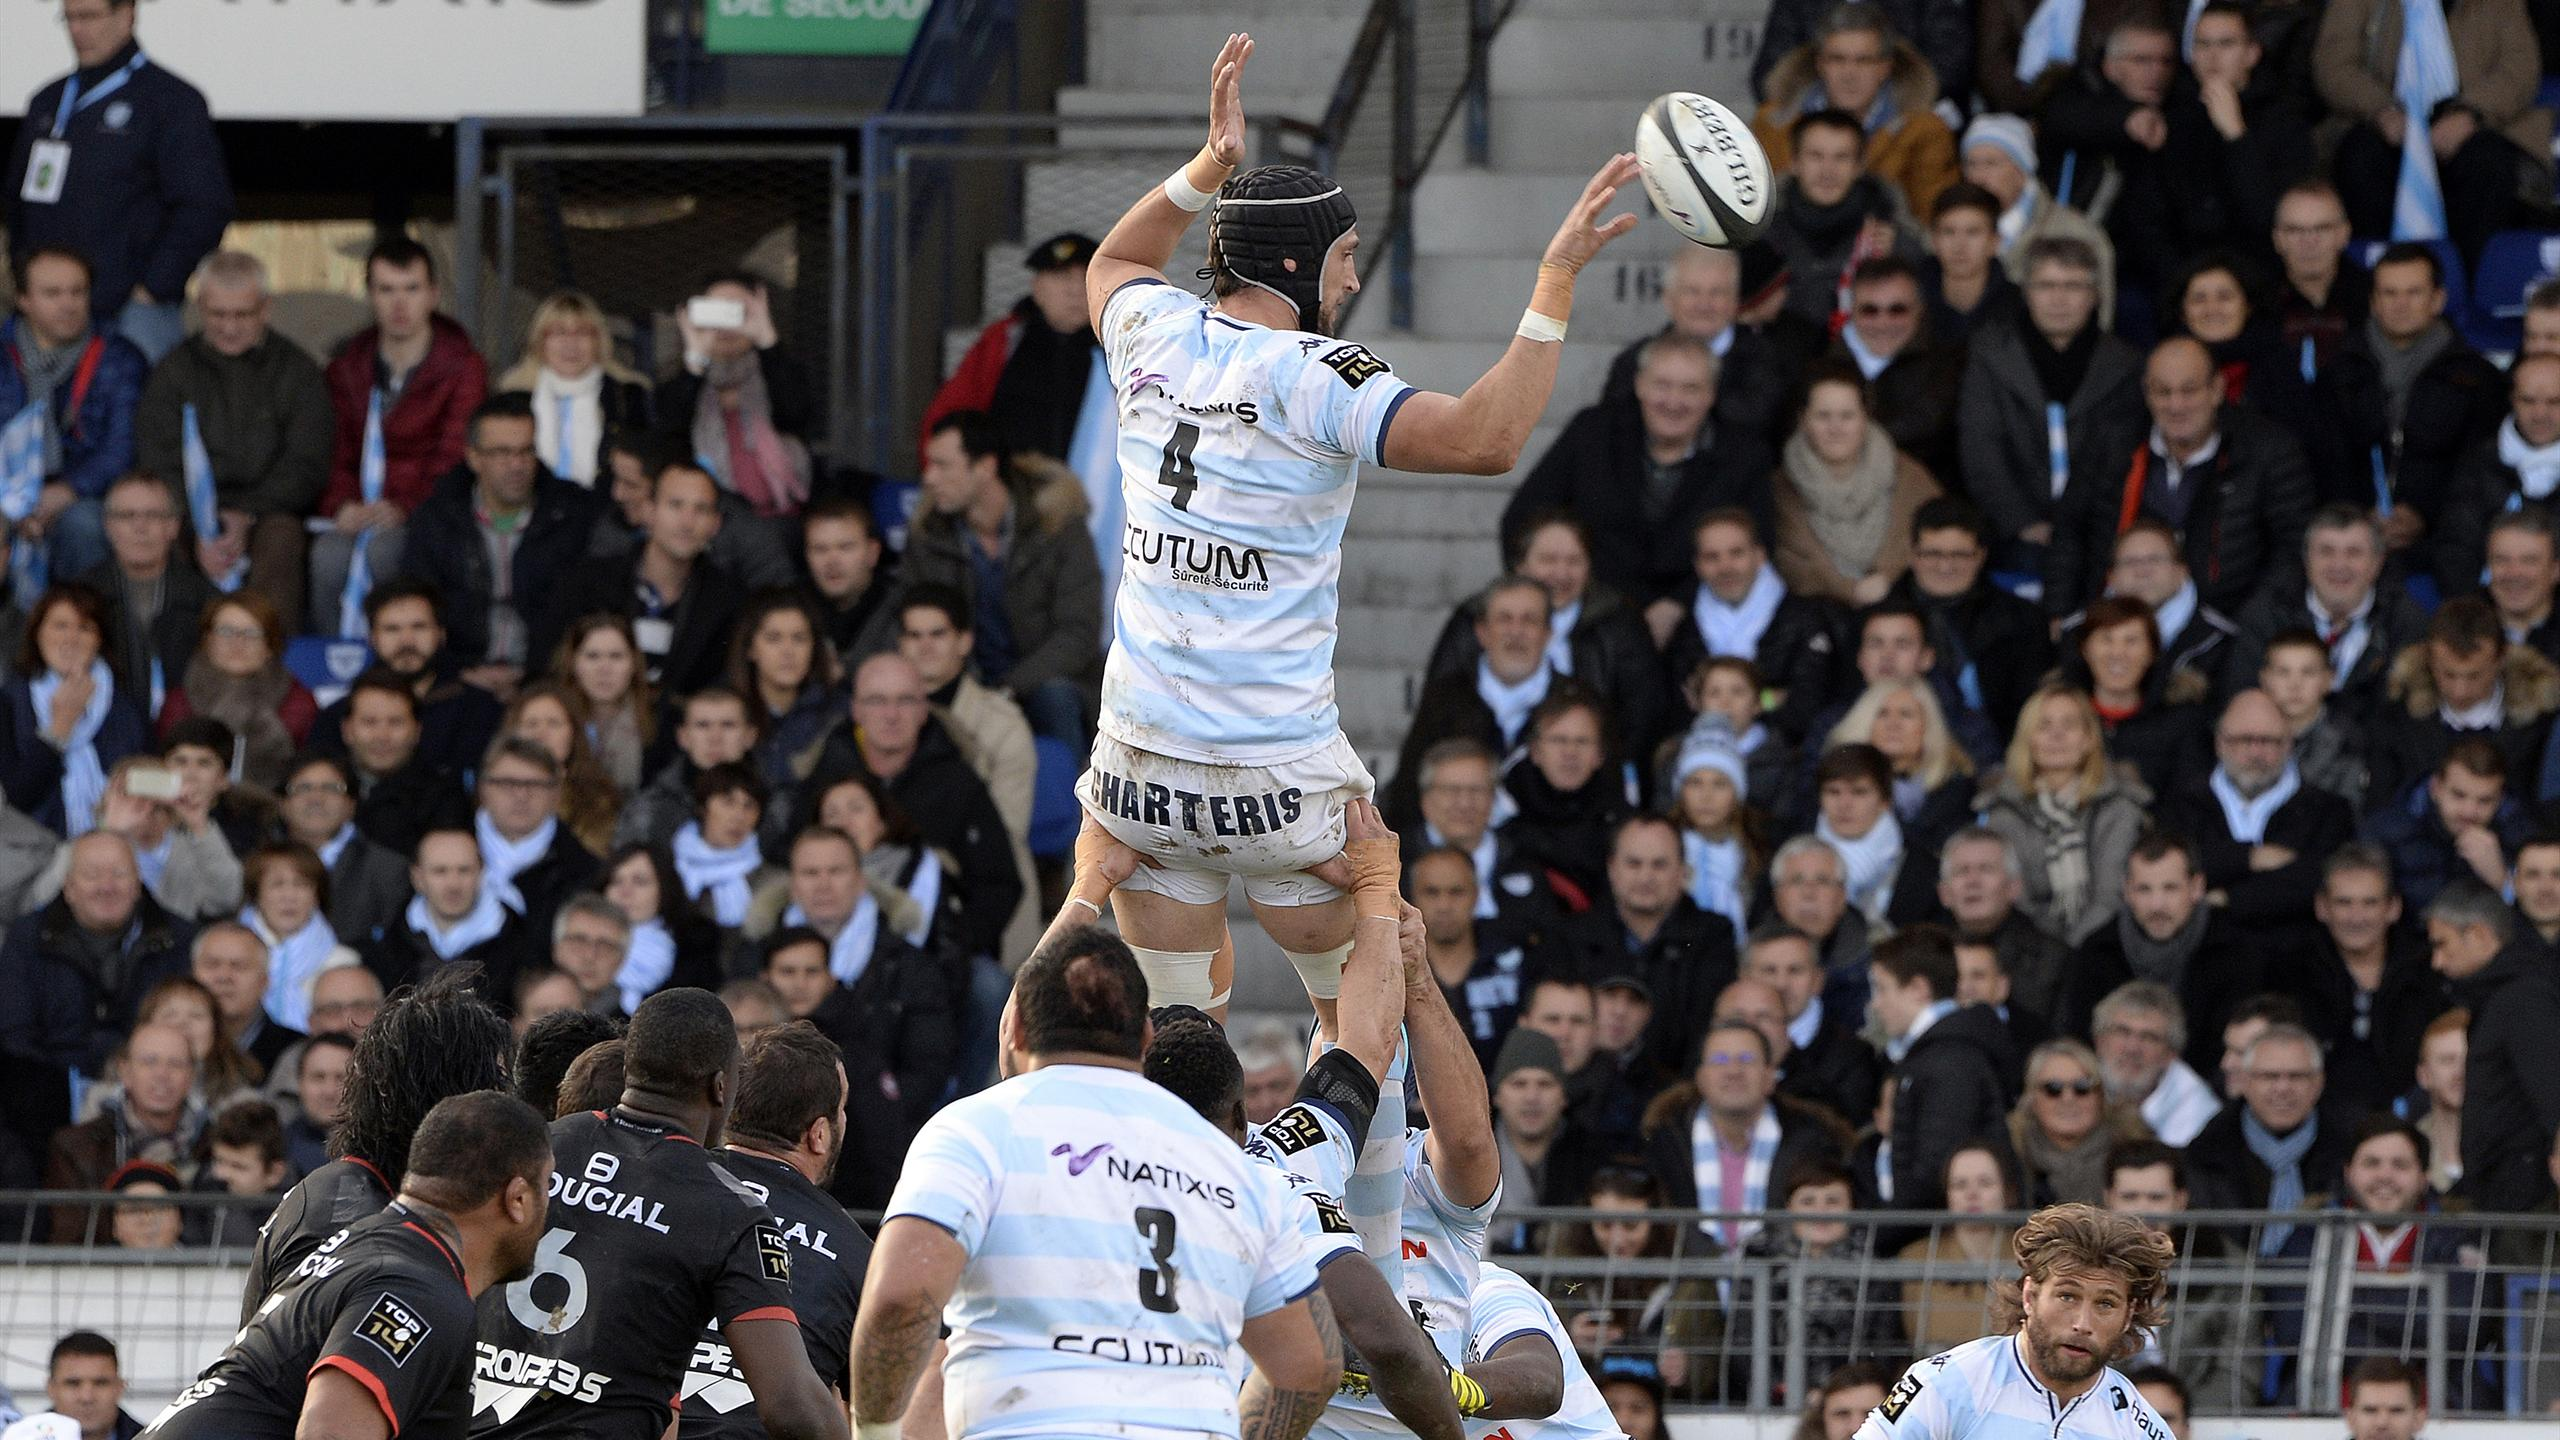 Luke Charteris (Racing 92) - 28 novembre 2015